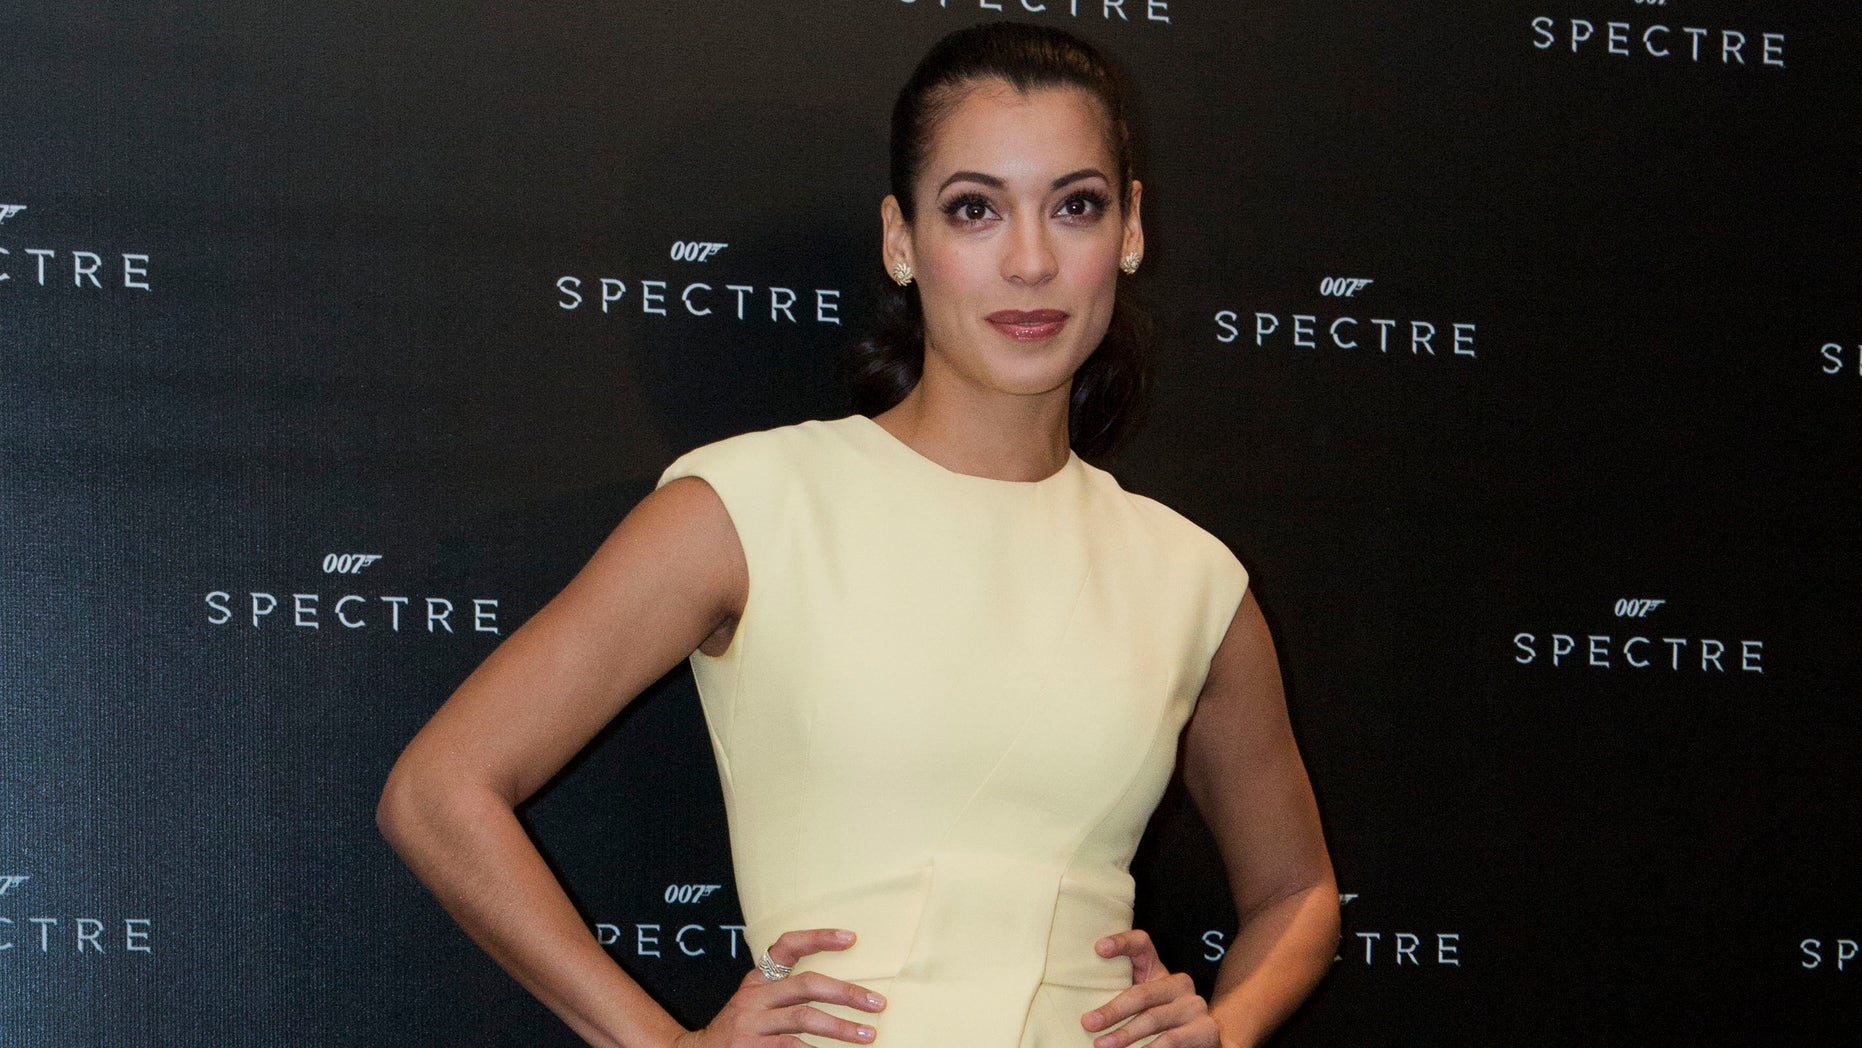 """FILE - In this March 18, 2015, file photo, """"Bond girl"""" Stephanie Sigman poses for pictures ahead of a press conference to discuss her role in the upcoming 007 film """"Spectre,"""" in Mexico City. Sigman, the first Mexican actress to play the role of a Bond girl in a film, will play the role of Estrella in the upcoming James Bond film âSpectre.â Sigman said Saturday, March 28, 2015, that having a tomboy attitude has helped her to play the role. (AP Photo/Rebecca Blackwell, File)"""